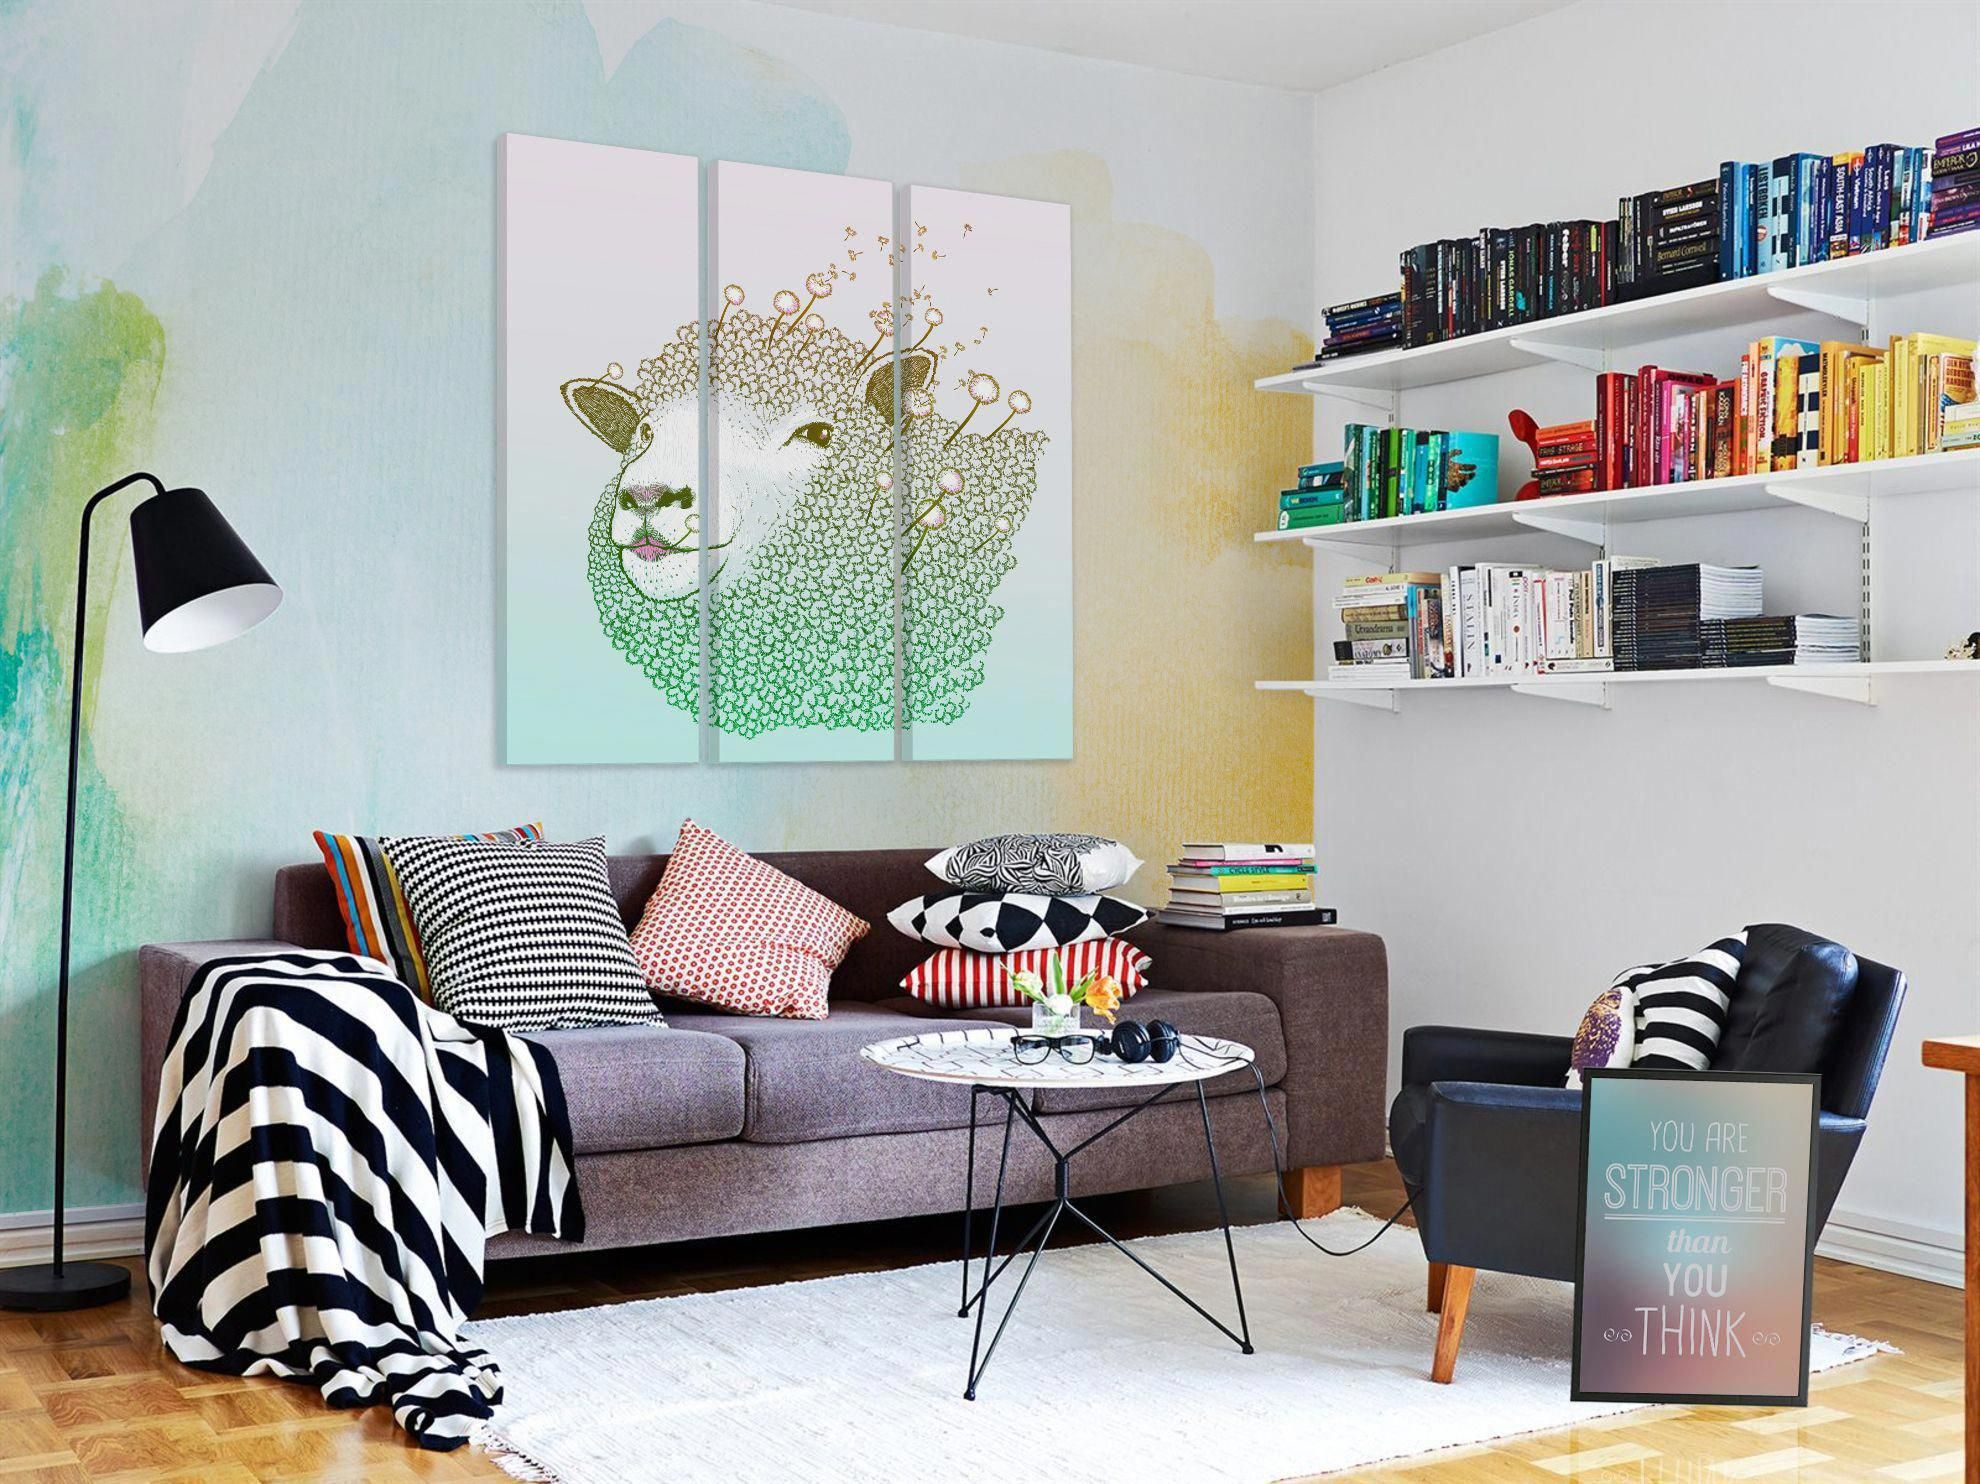 Cheap Sheep Living Room Contemporary 365 Day Money Back Guarantee Consulting On T Scandinavian Design Living Room Living Room Scandinavian Living Decor